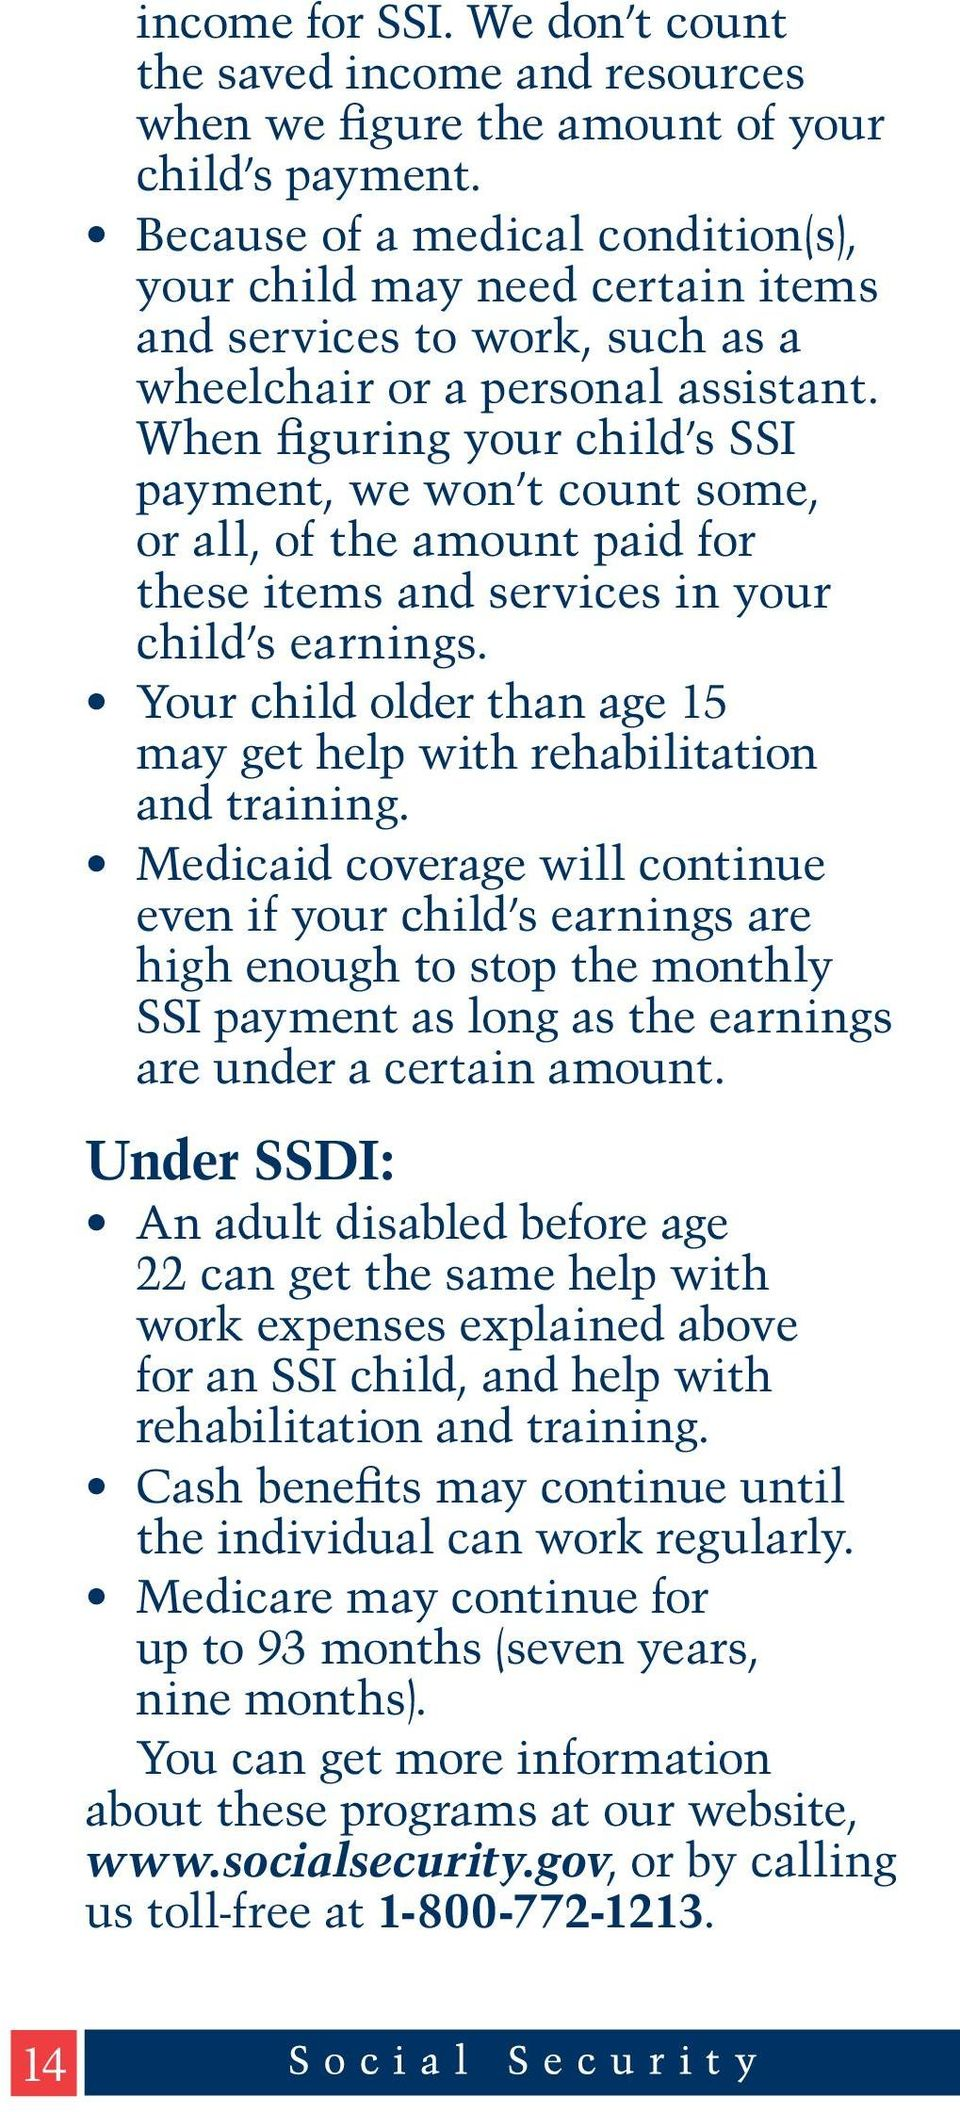 When figuring your child s SSI payment, we won t count some, or all, of the amount paid for these items and services in your child s earnings.